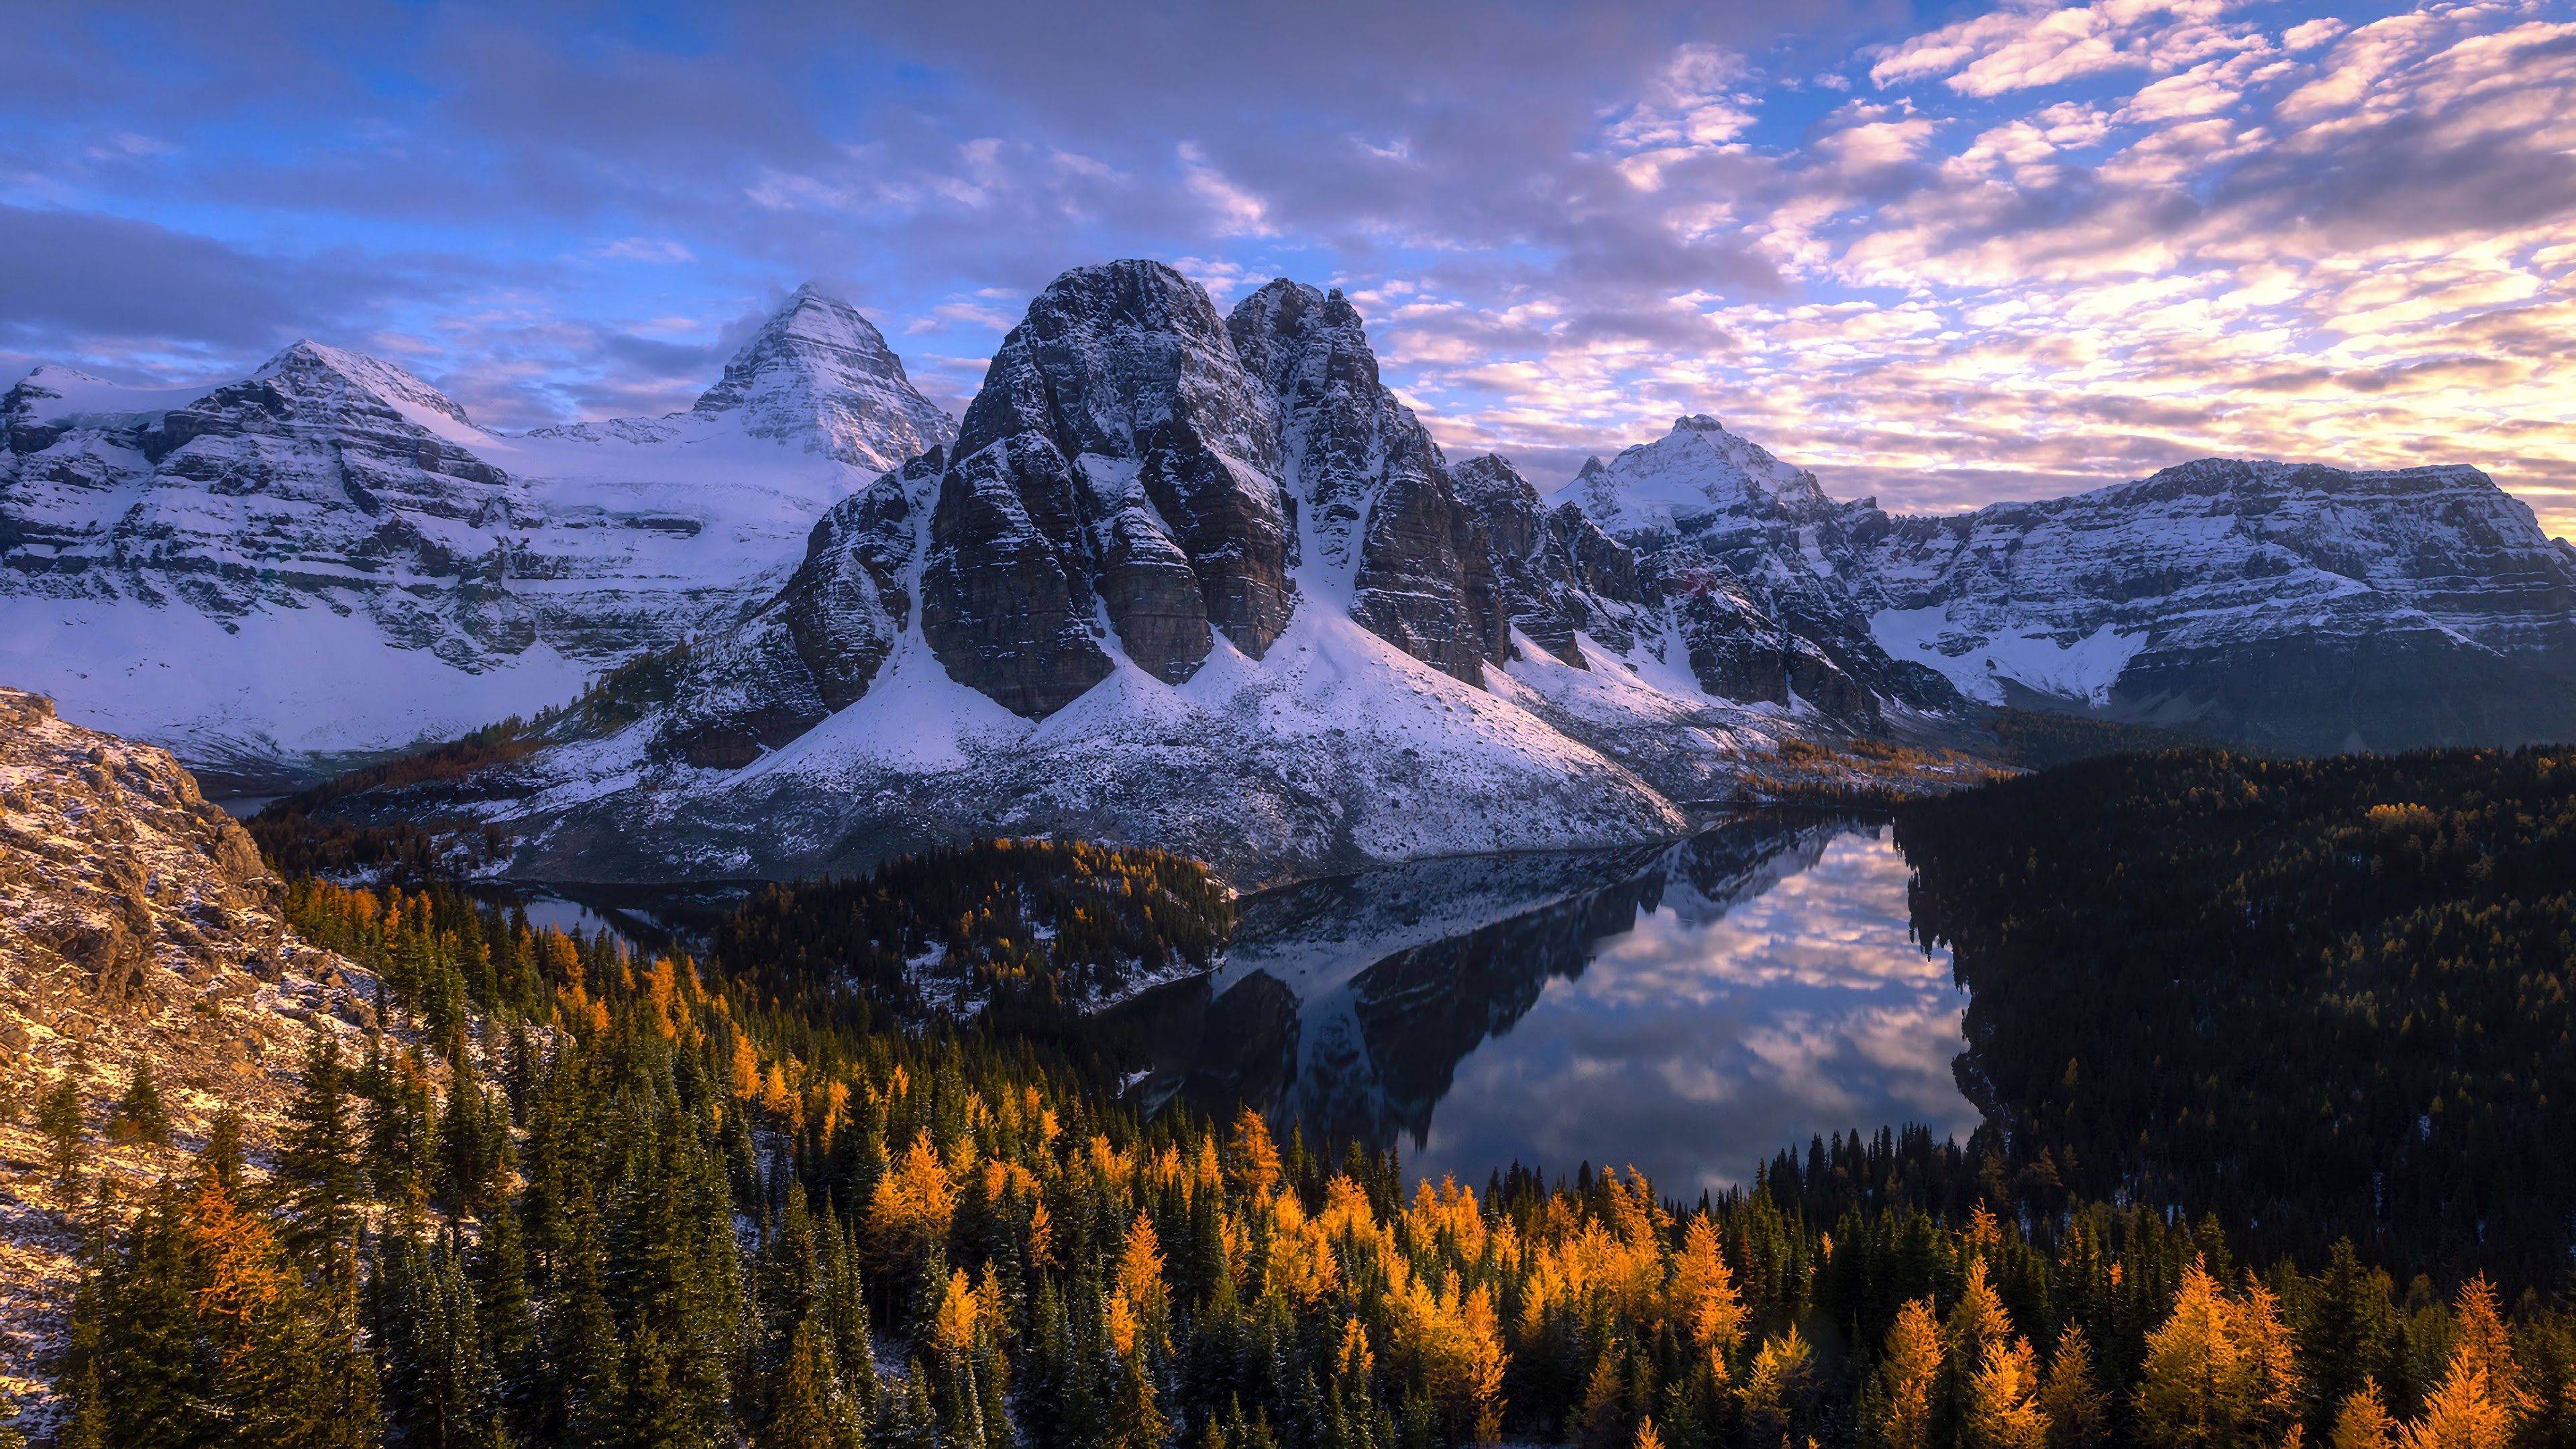 Mountain, Lake, Nature, Forest, Landscape, Scenery, 4K ...